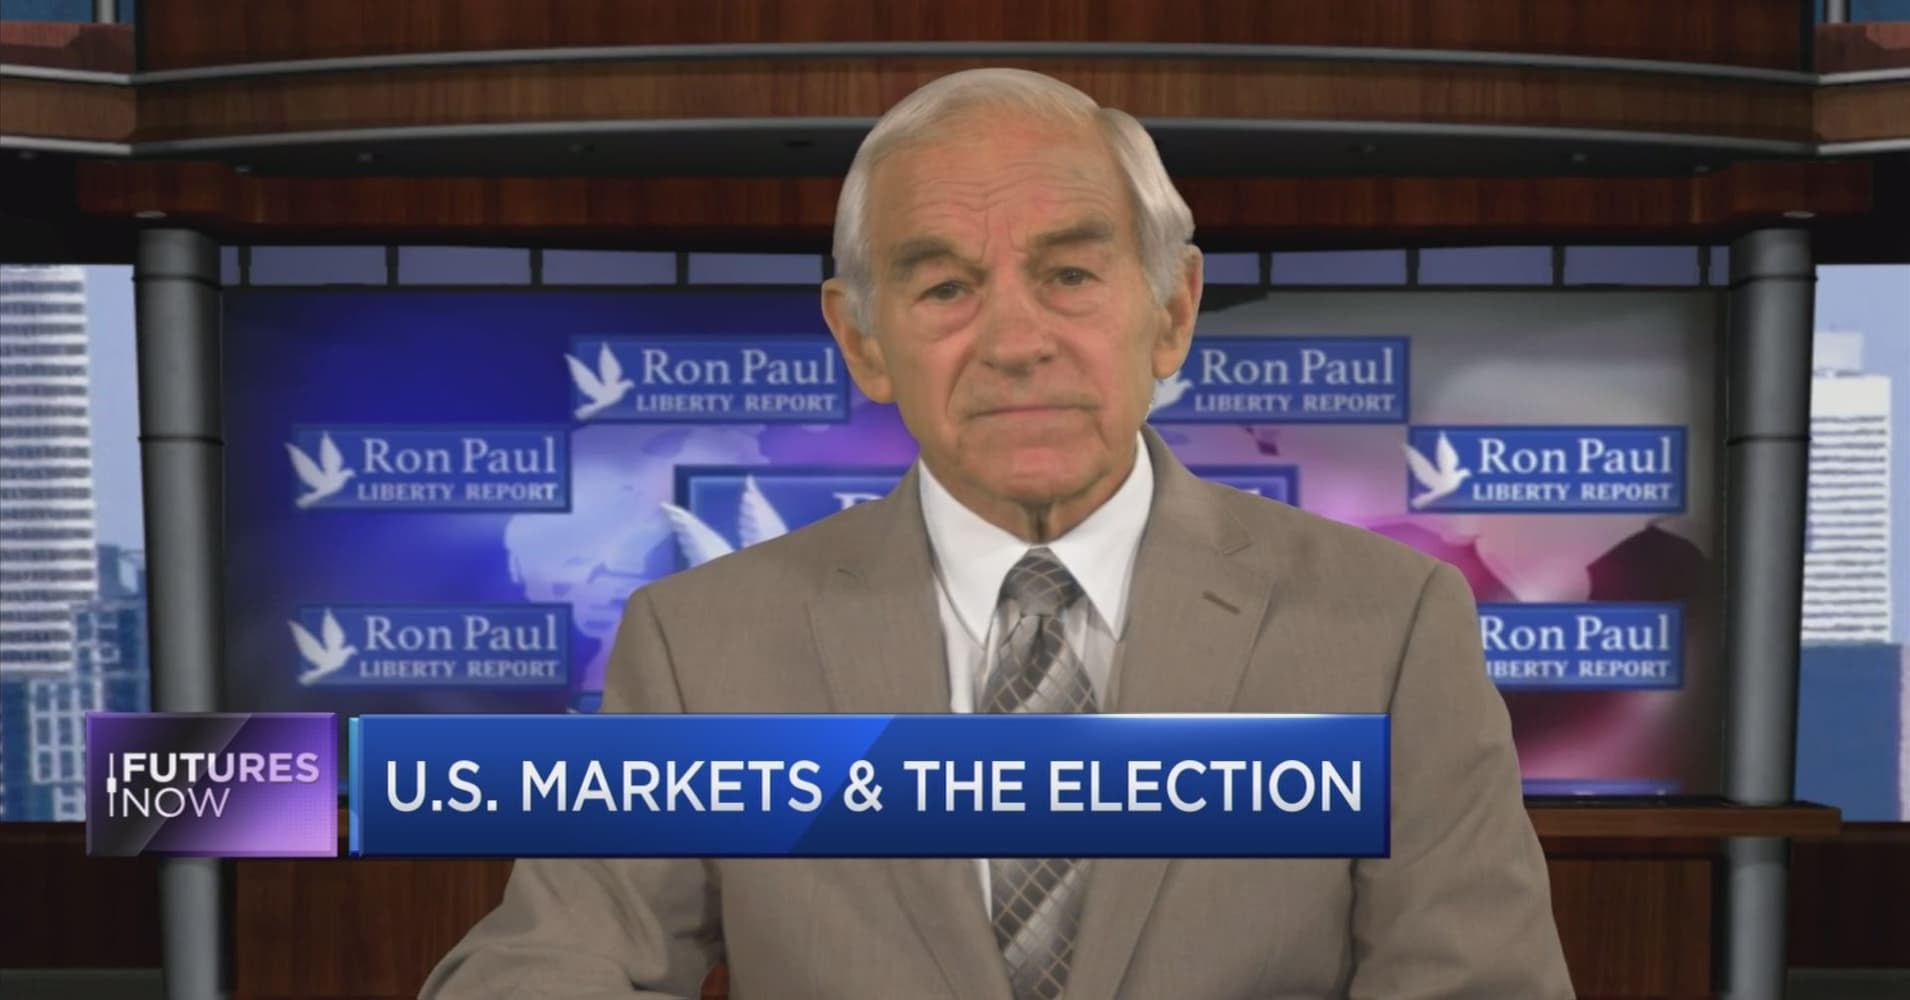 http://fm.cnbc.com/applications/cnbc.com/resources/img/editorial/2016/07/29/103830441-6ED3-REQ-FN-RonPaul1-07292016.1910x1000.jpg